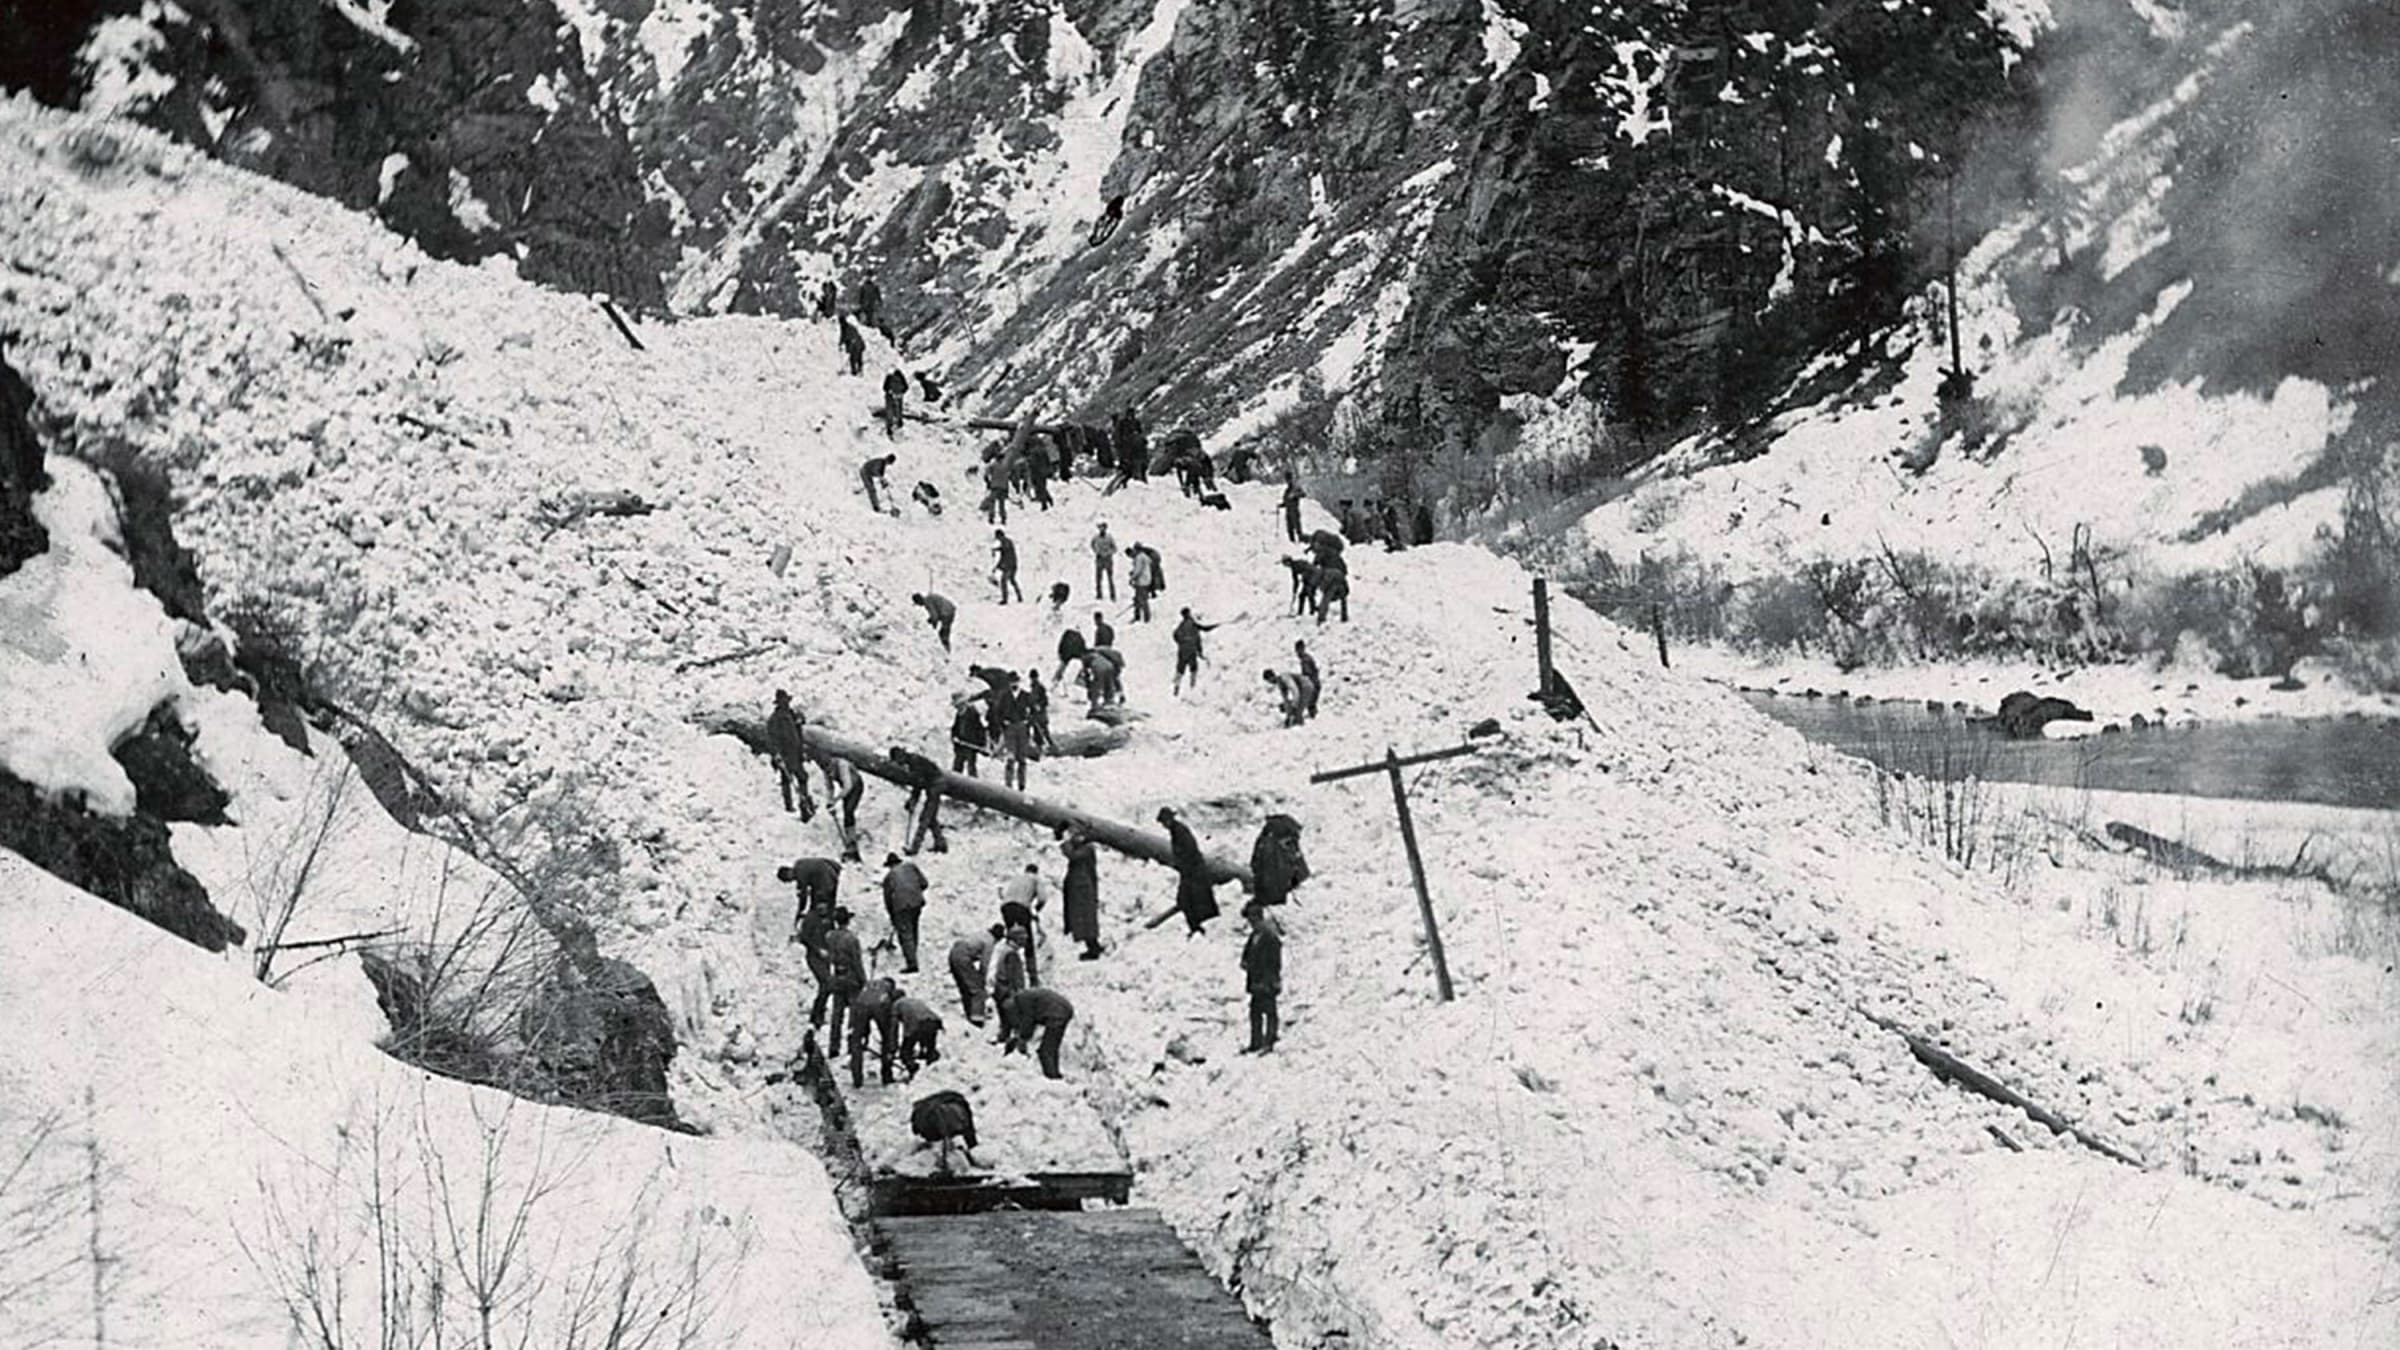 Worst On Mission Into A Colorado's Hiked Gold Who The Blizzard Miner WDHIeE2Y9